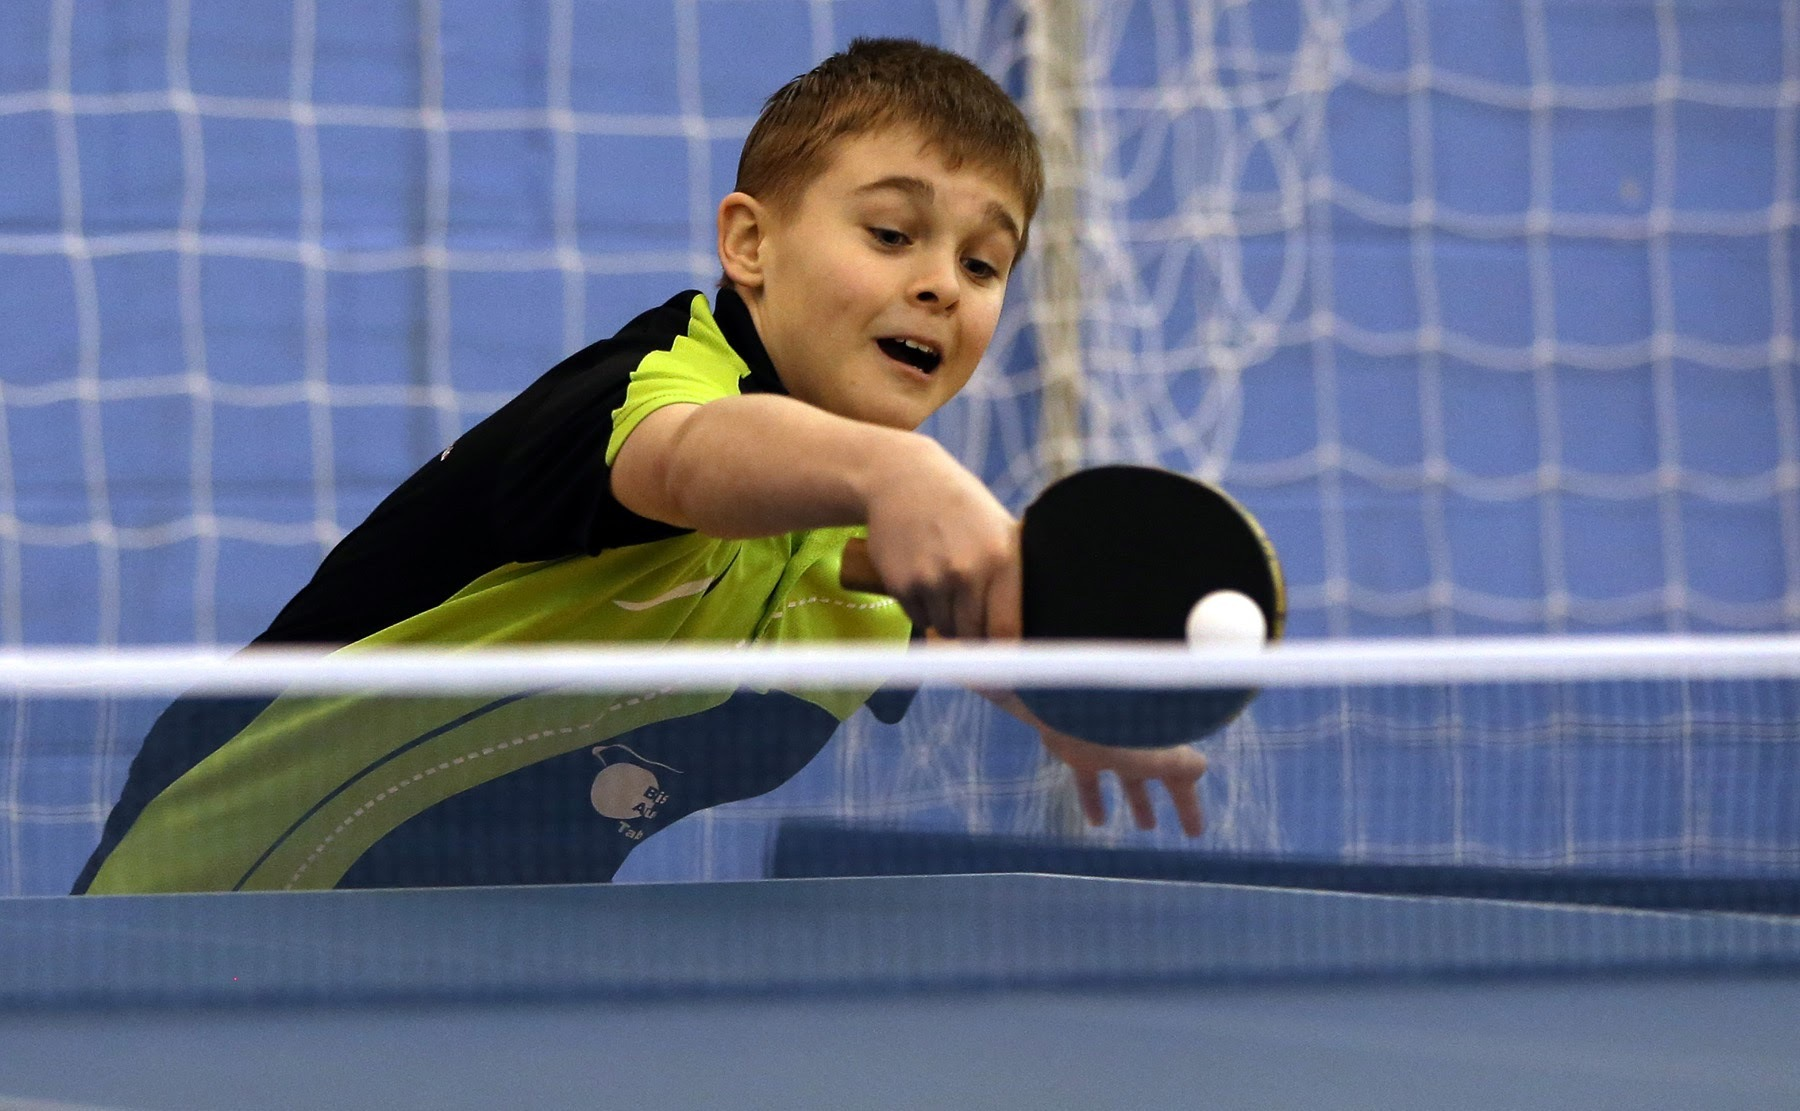 CELEBRATION: Bishop Auckland Table Tennis Club is holding an open day to celebrate National Table Tennis Day Picture: CHRIS BOOTH.